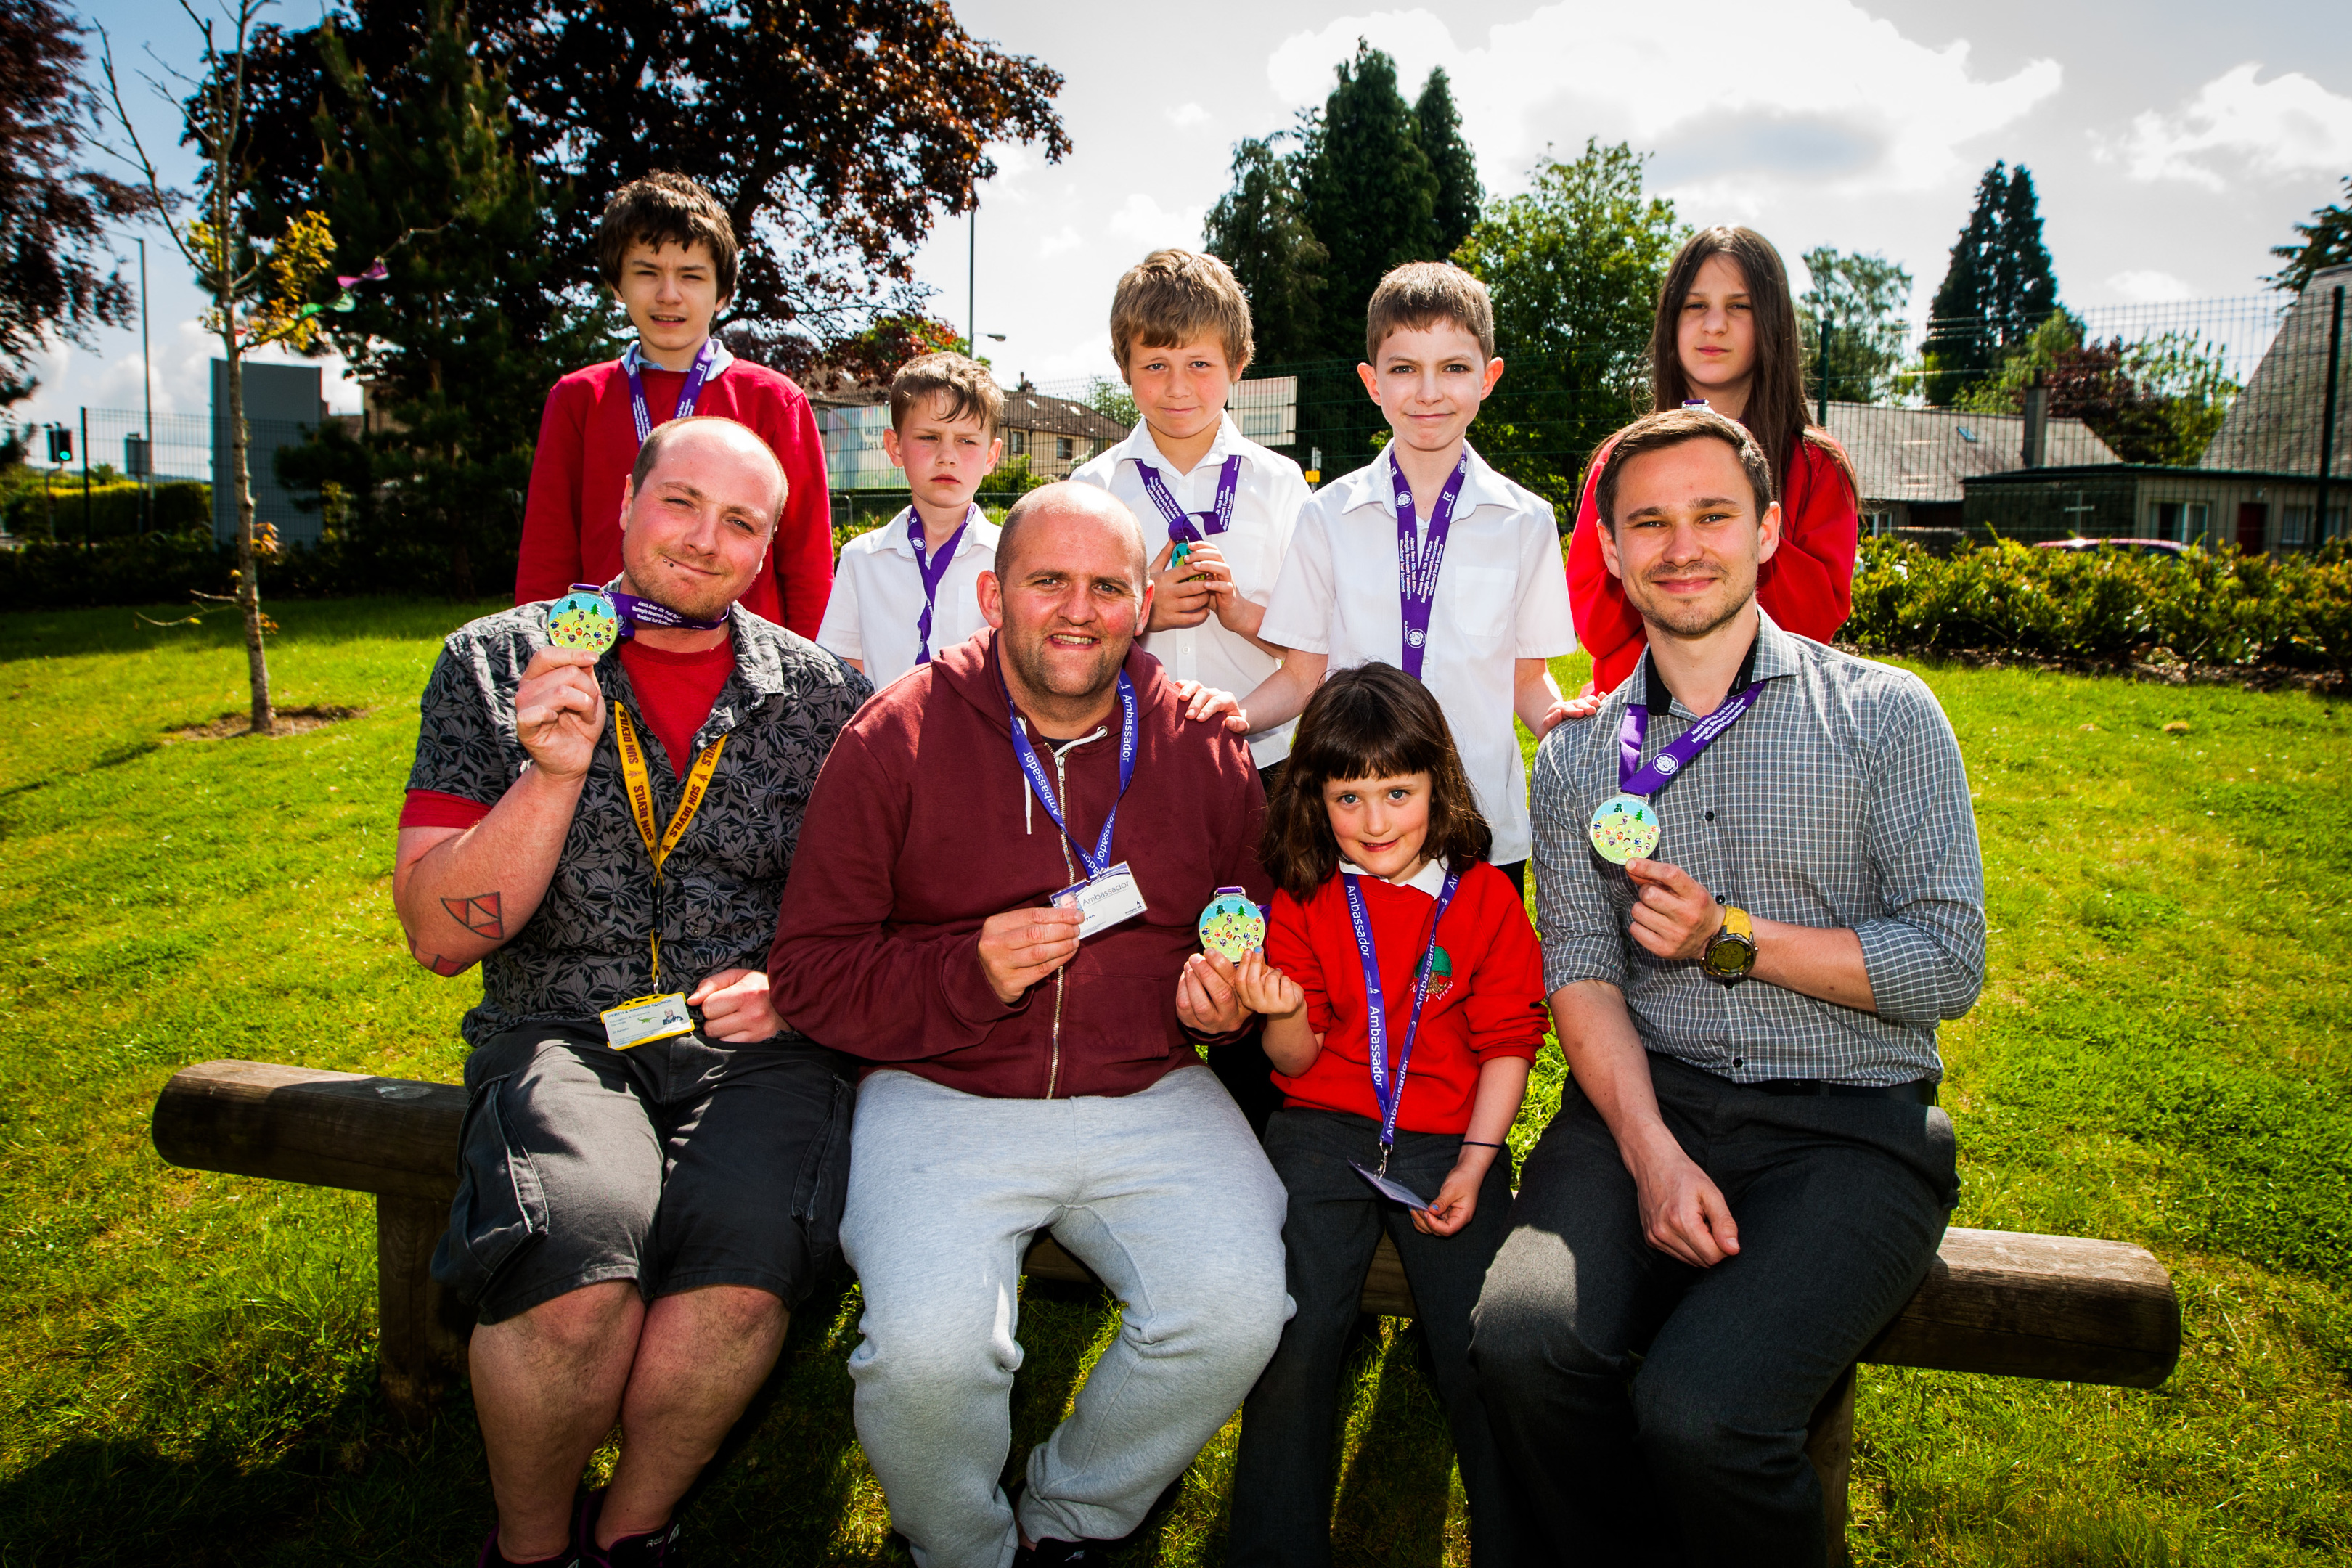 Alan Glynn presenting medals for the Alexis Rose Trail Race to pupils who designed the medal. He and his daughter Christina have already raised more than £100,000 for meningitis charities.